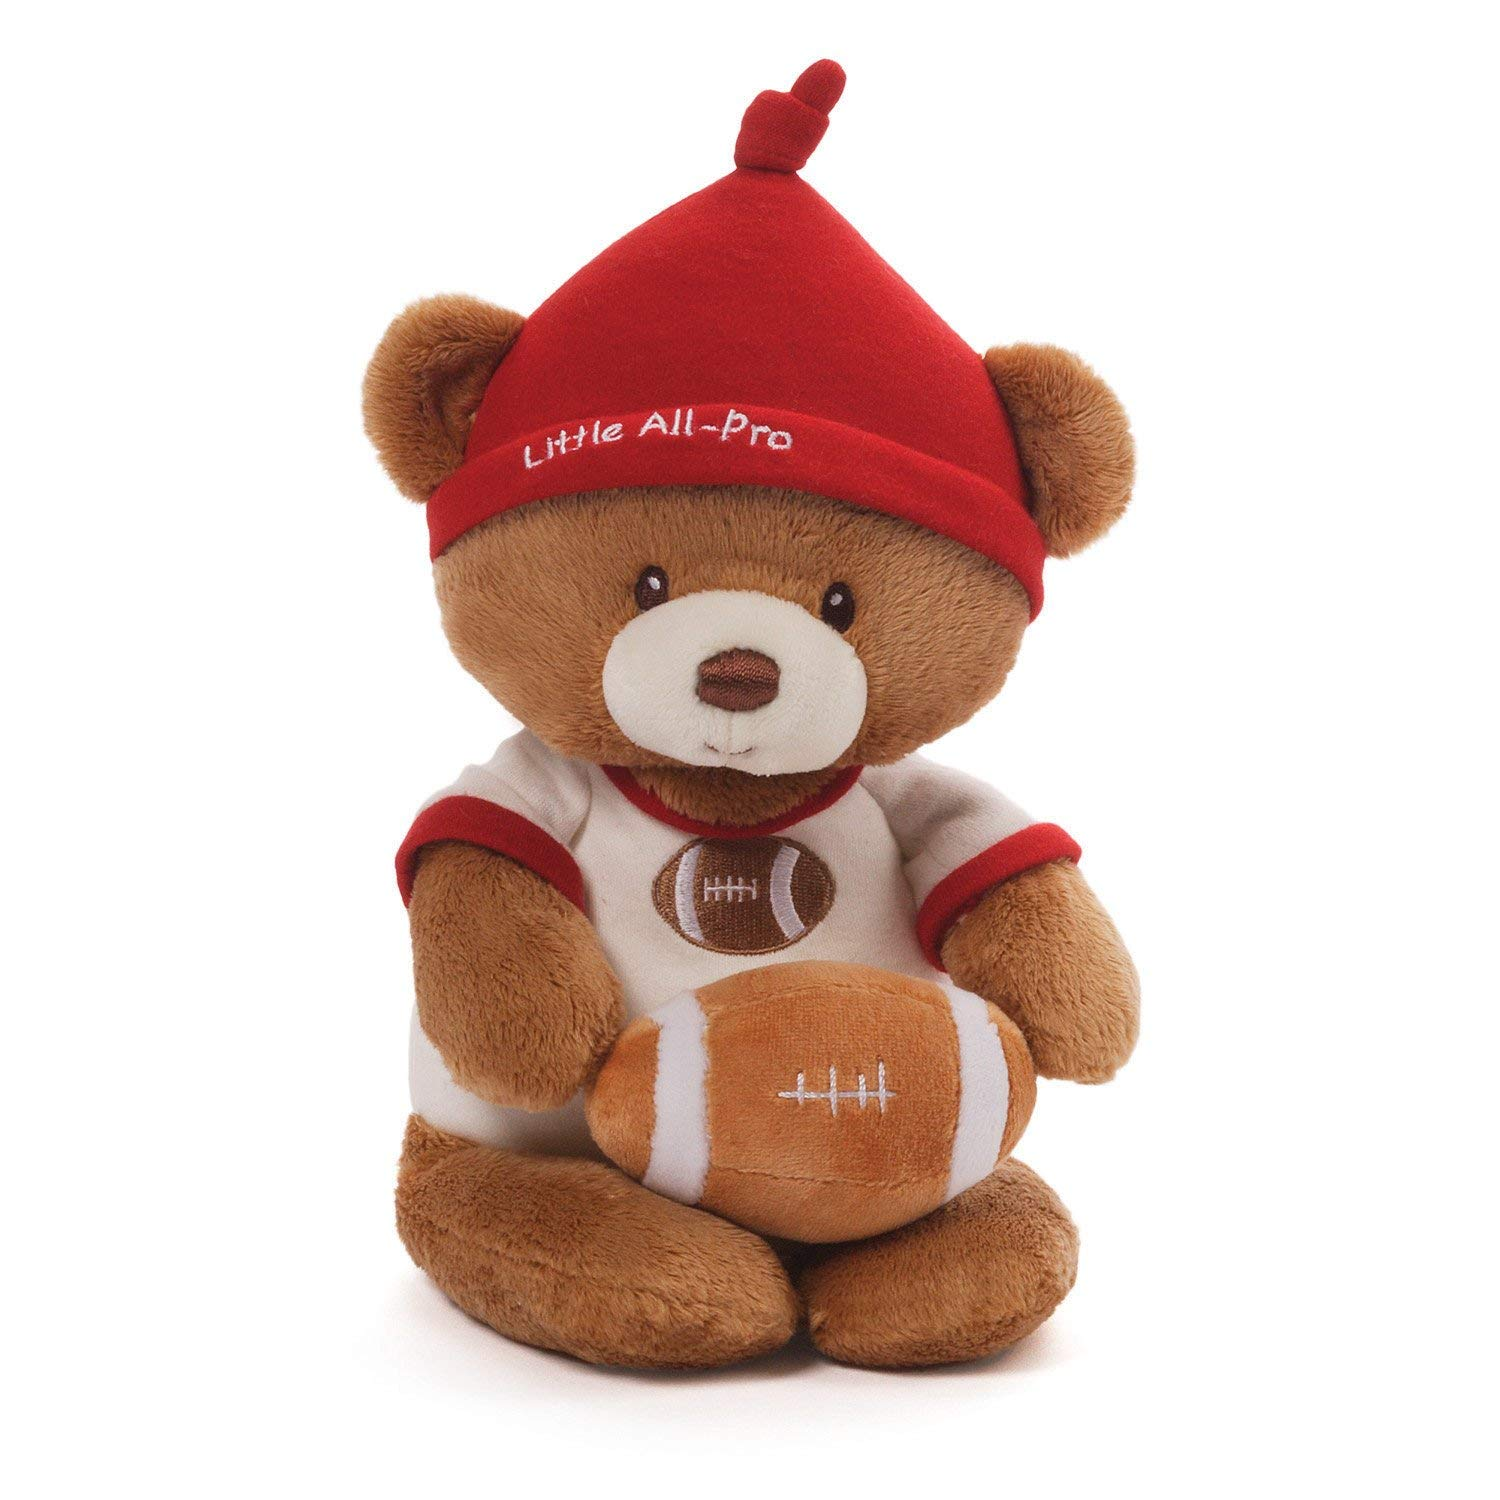 ef171178022 Get Quotations · Gund Baby Teddy Bear and Rattle